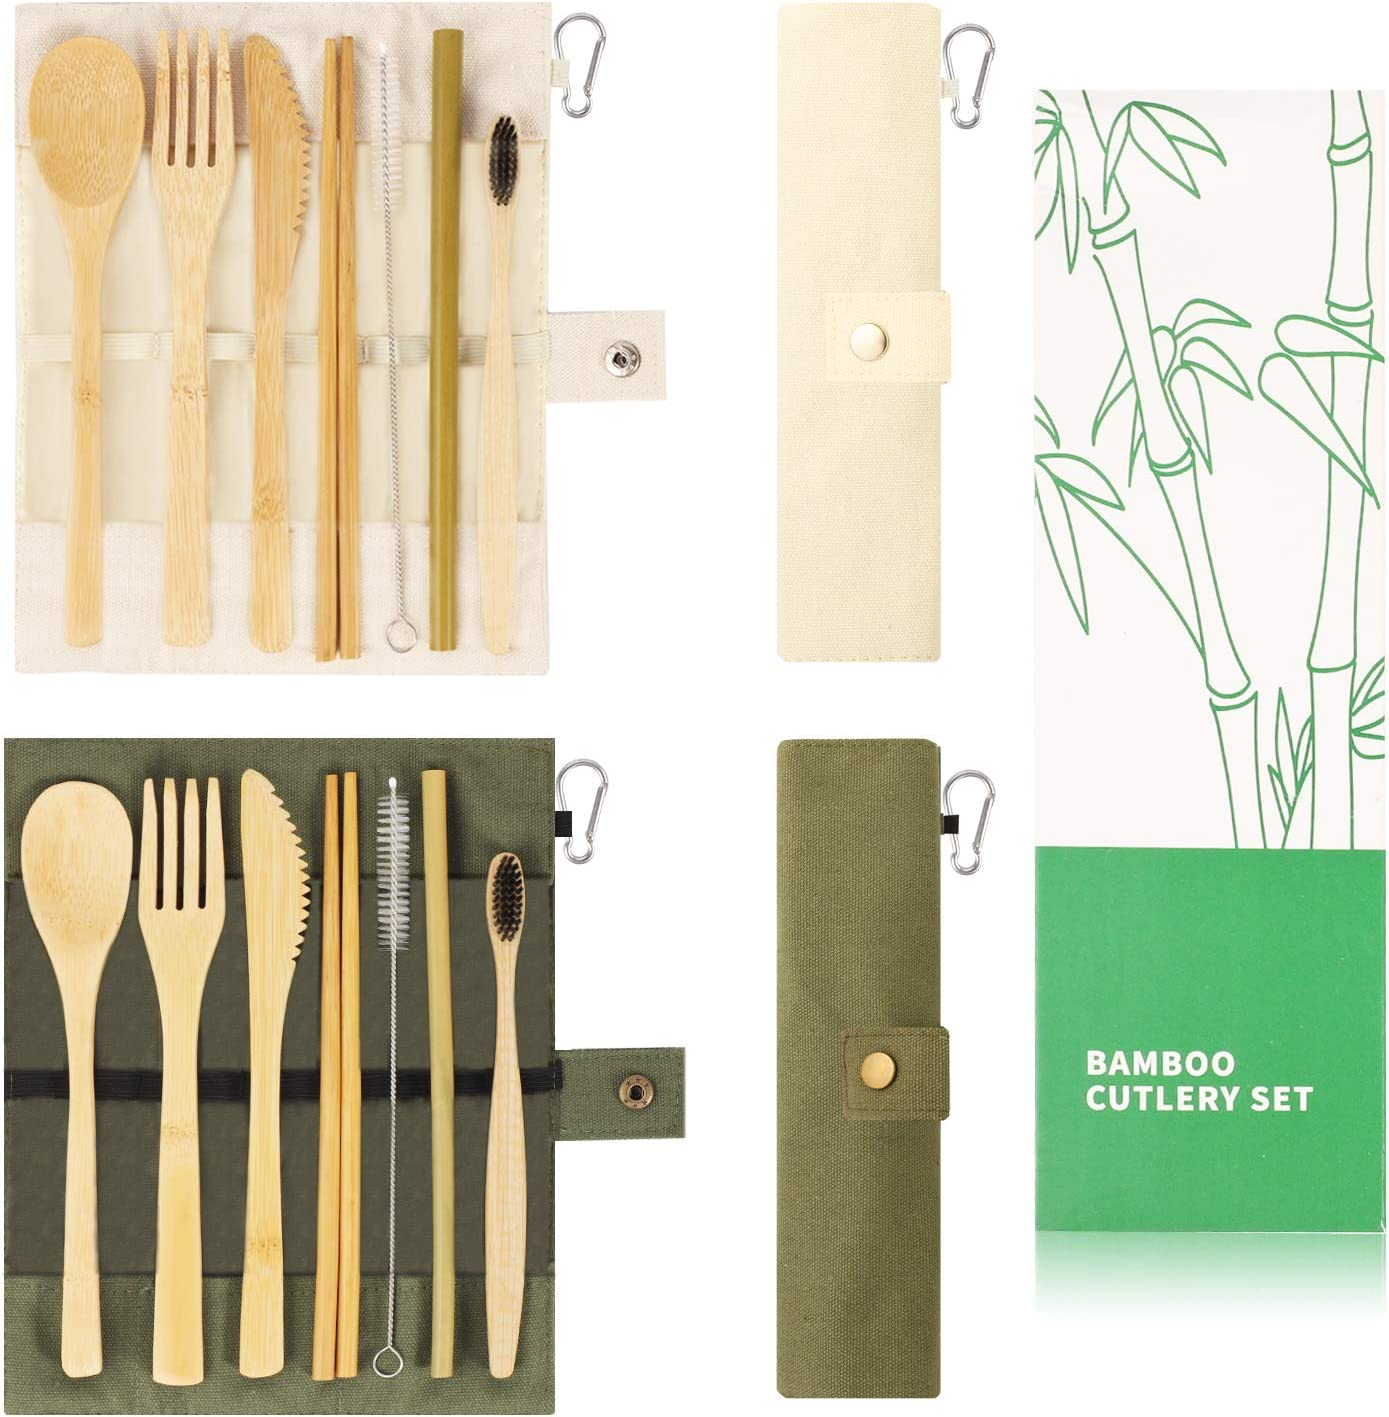 2 Set Bamboo Utensils Set, YIMICOO Travel Reusable Cutlery Set, Outdoor Portable Eco-Friendly silverware with Case -Bamboo Knife, Fork, Spoon, Straw, Straw Brush, Chopsticks and Bamboo Toothbrush